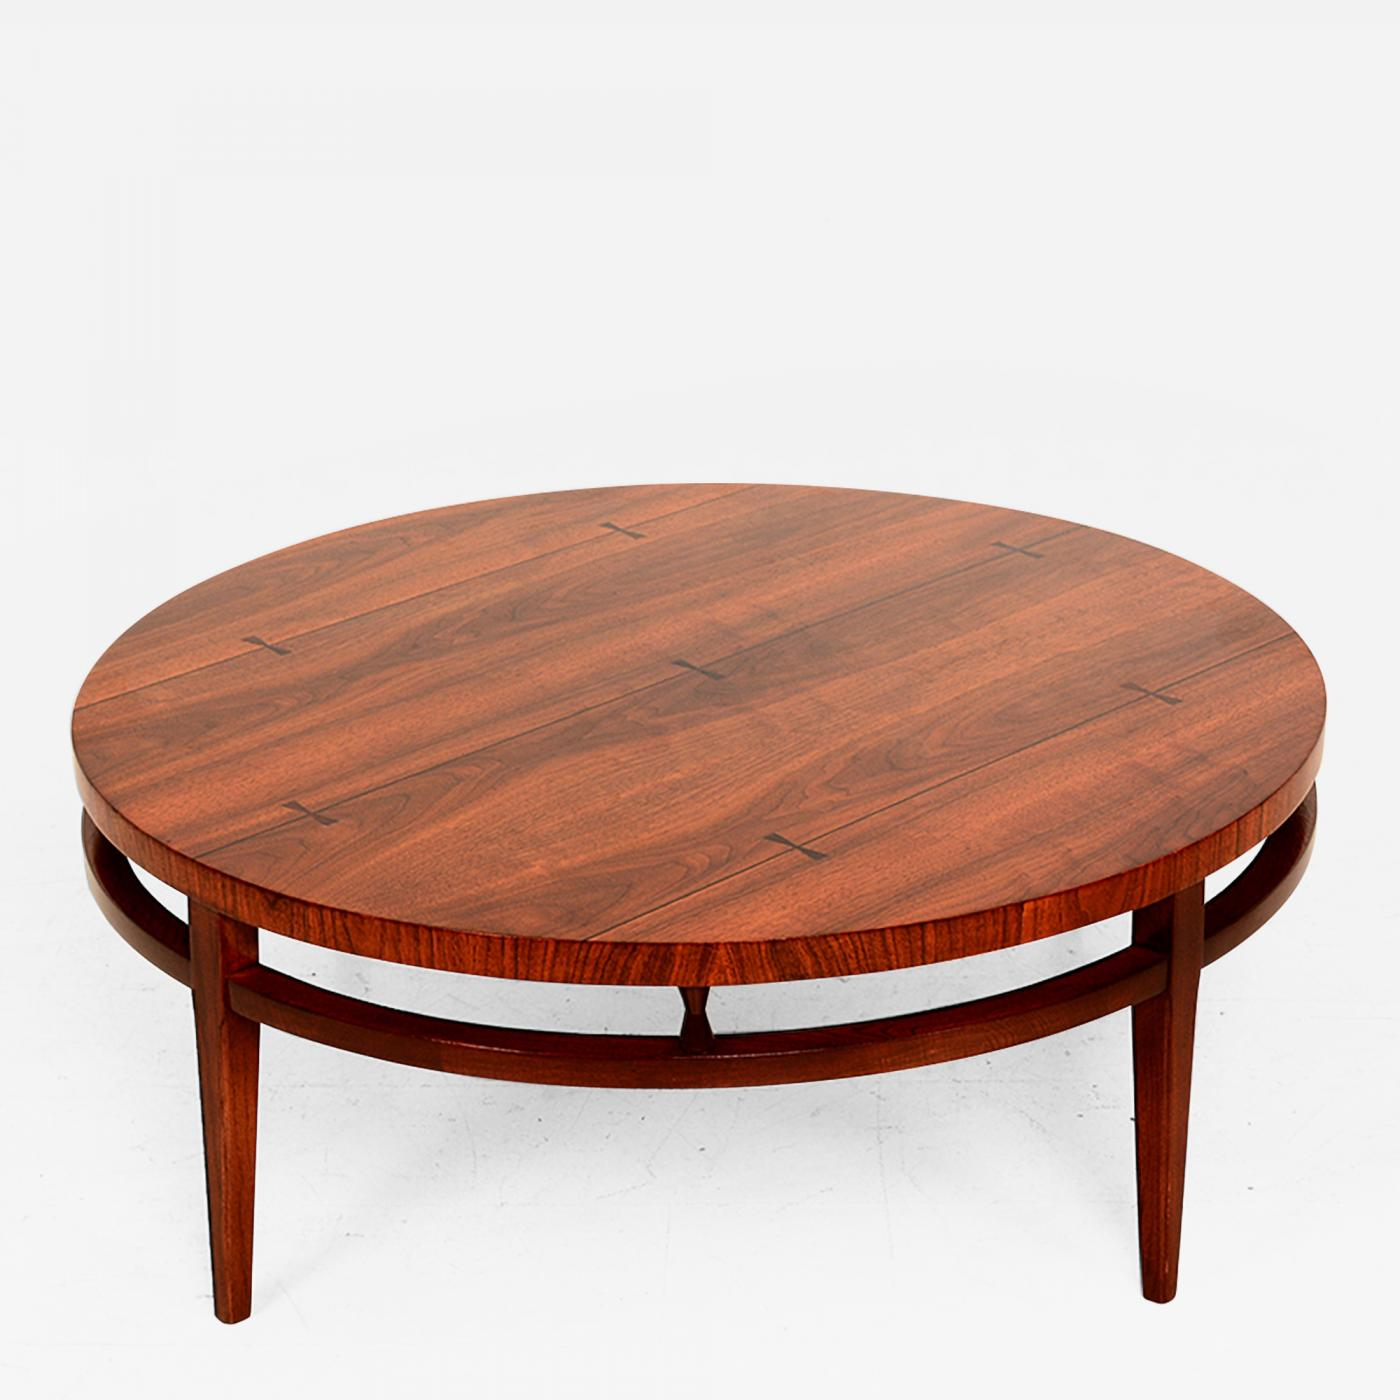 Lane Furniture Mid Century Modern Round Coffee Cocktail Table by